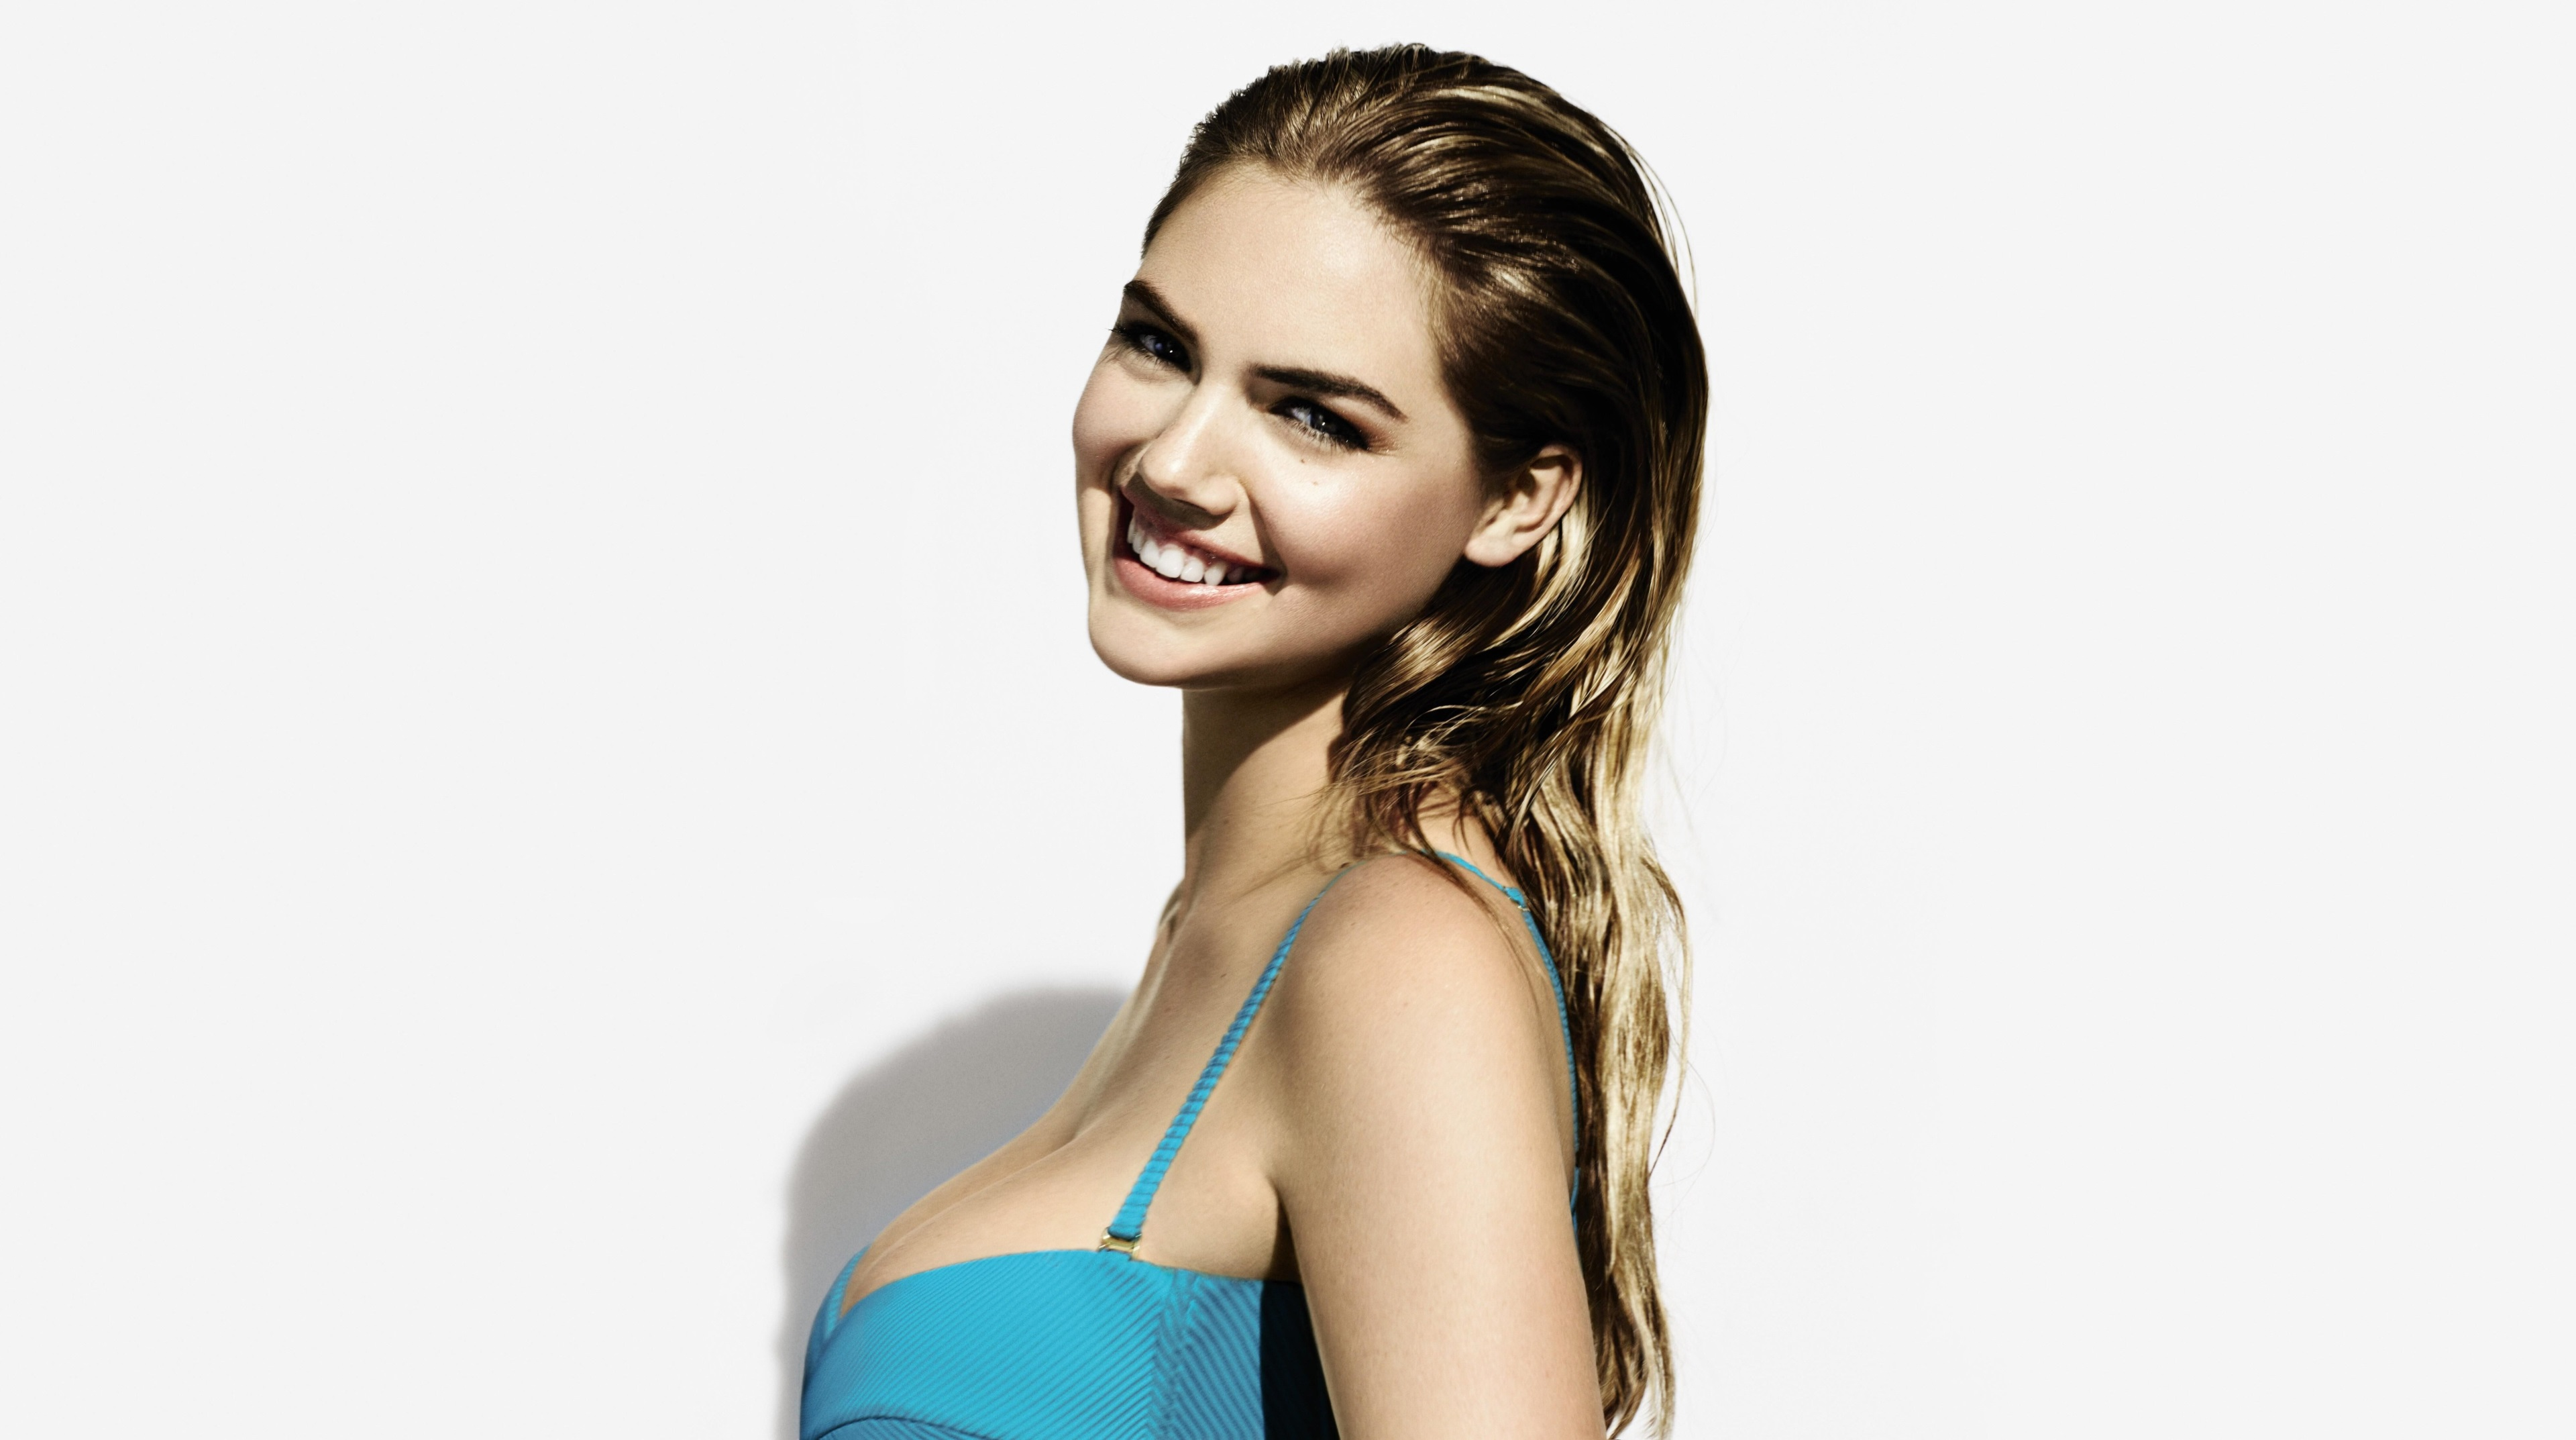 kate upton sexy 4k wallpaper background 2490